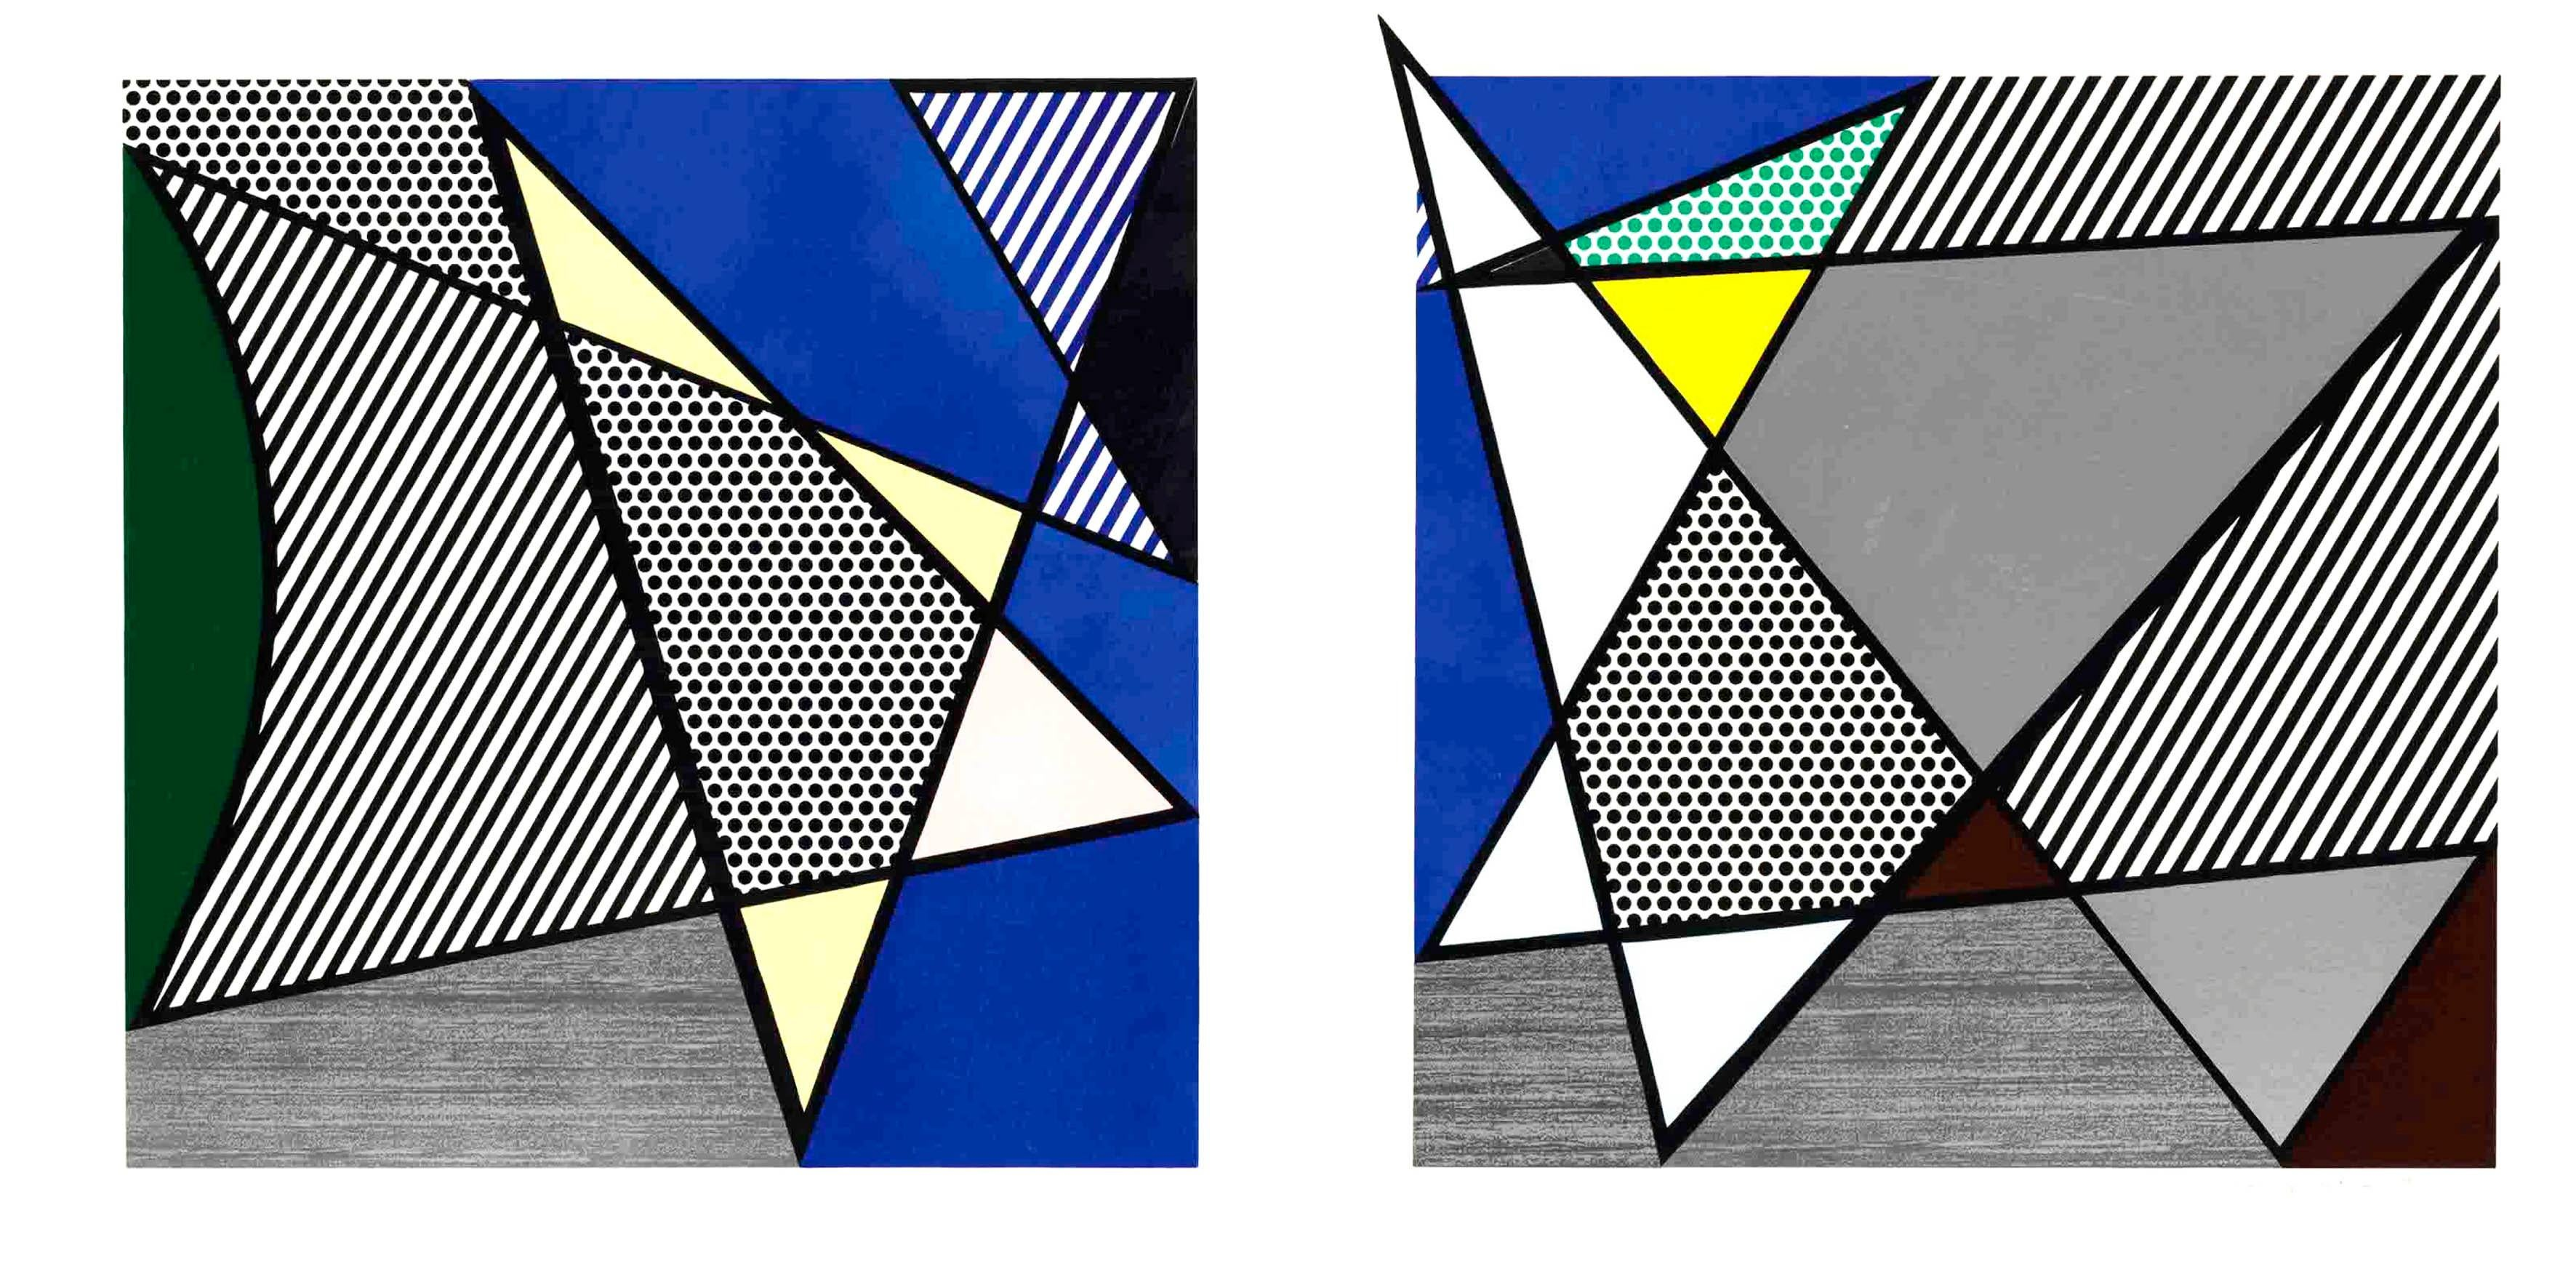 Imperfect Diptych 46 1/4'' x 91 3/8'', from: Imperfect Series